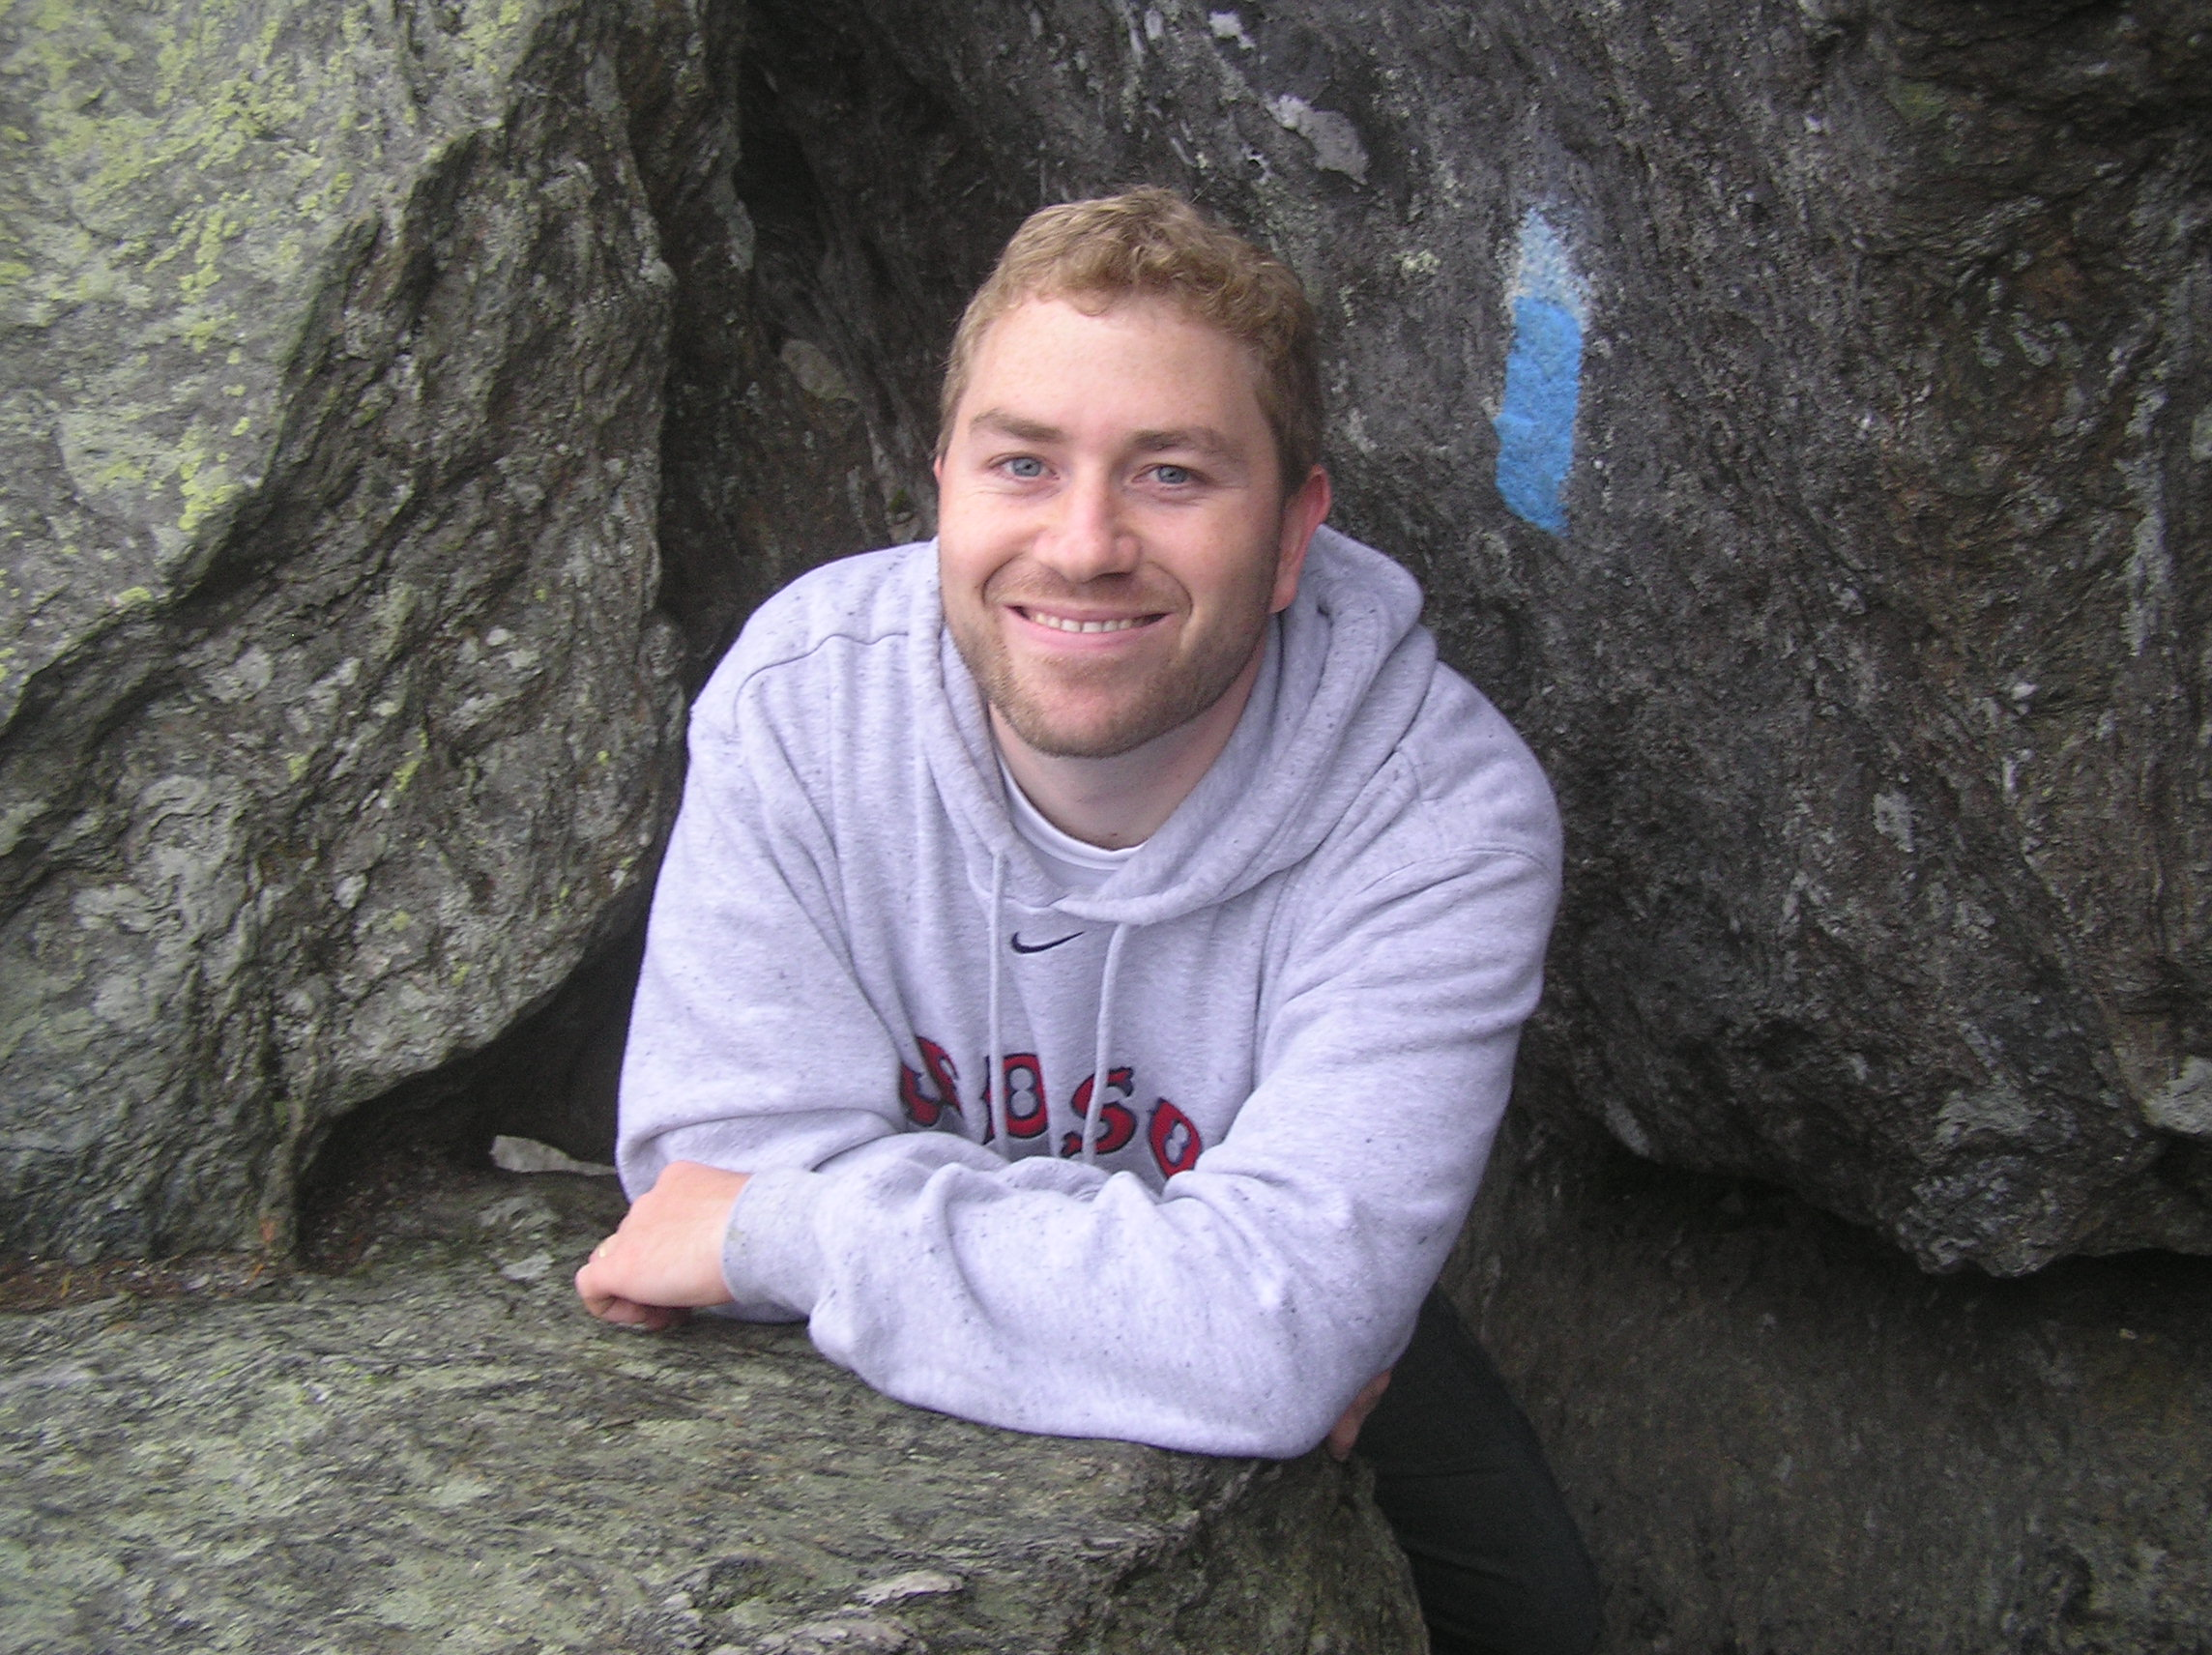 About THE AUTHOR - Josh Roberts has written for publications as varied as USA Today, The Boston Sunday Globe, and Business Insider. His debut novel, THE WITCHES OF WILLOW COVE, will be published Summer 2020 by Owl Hollow Press.